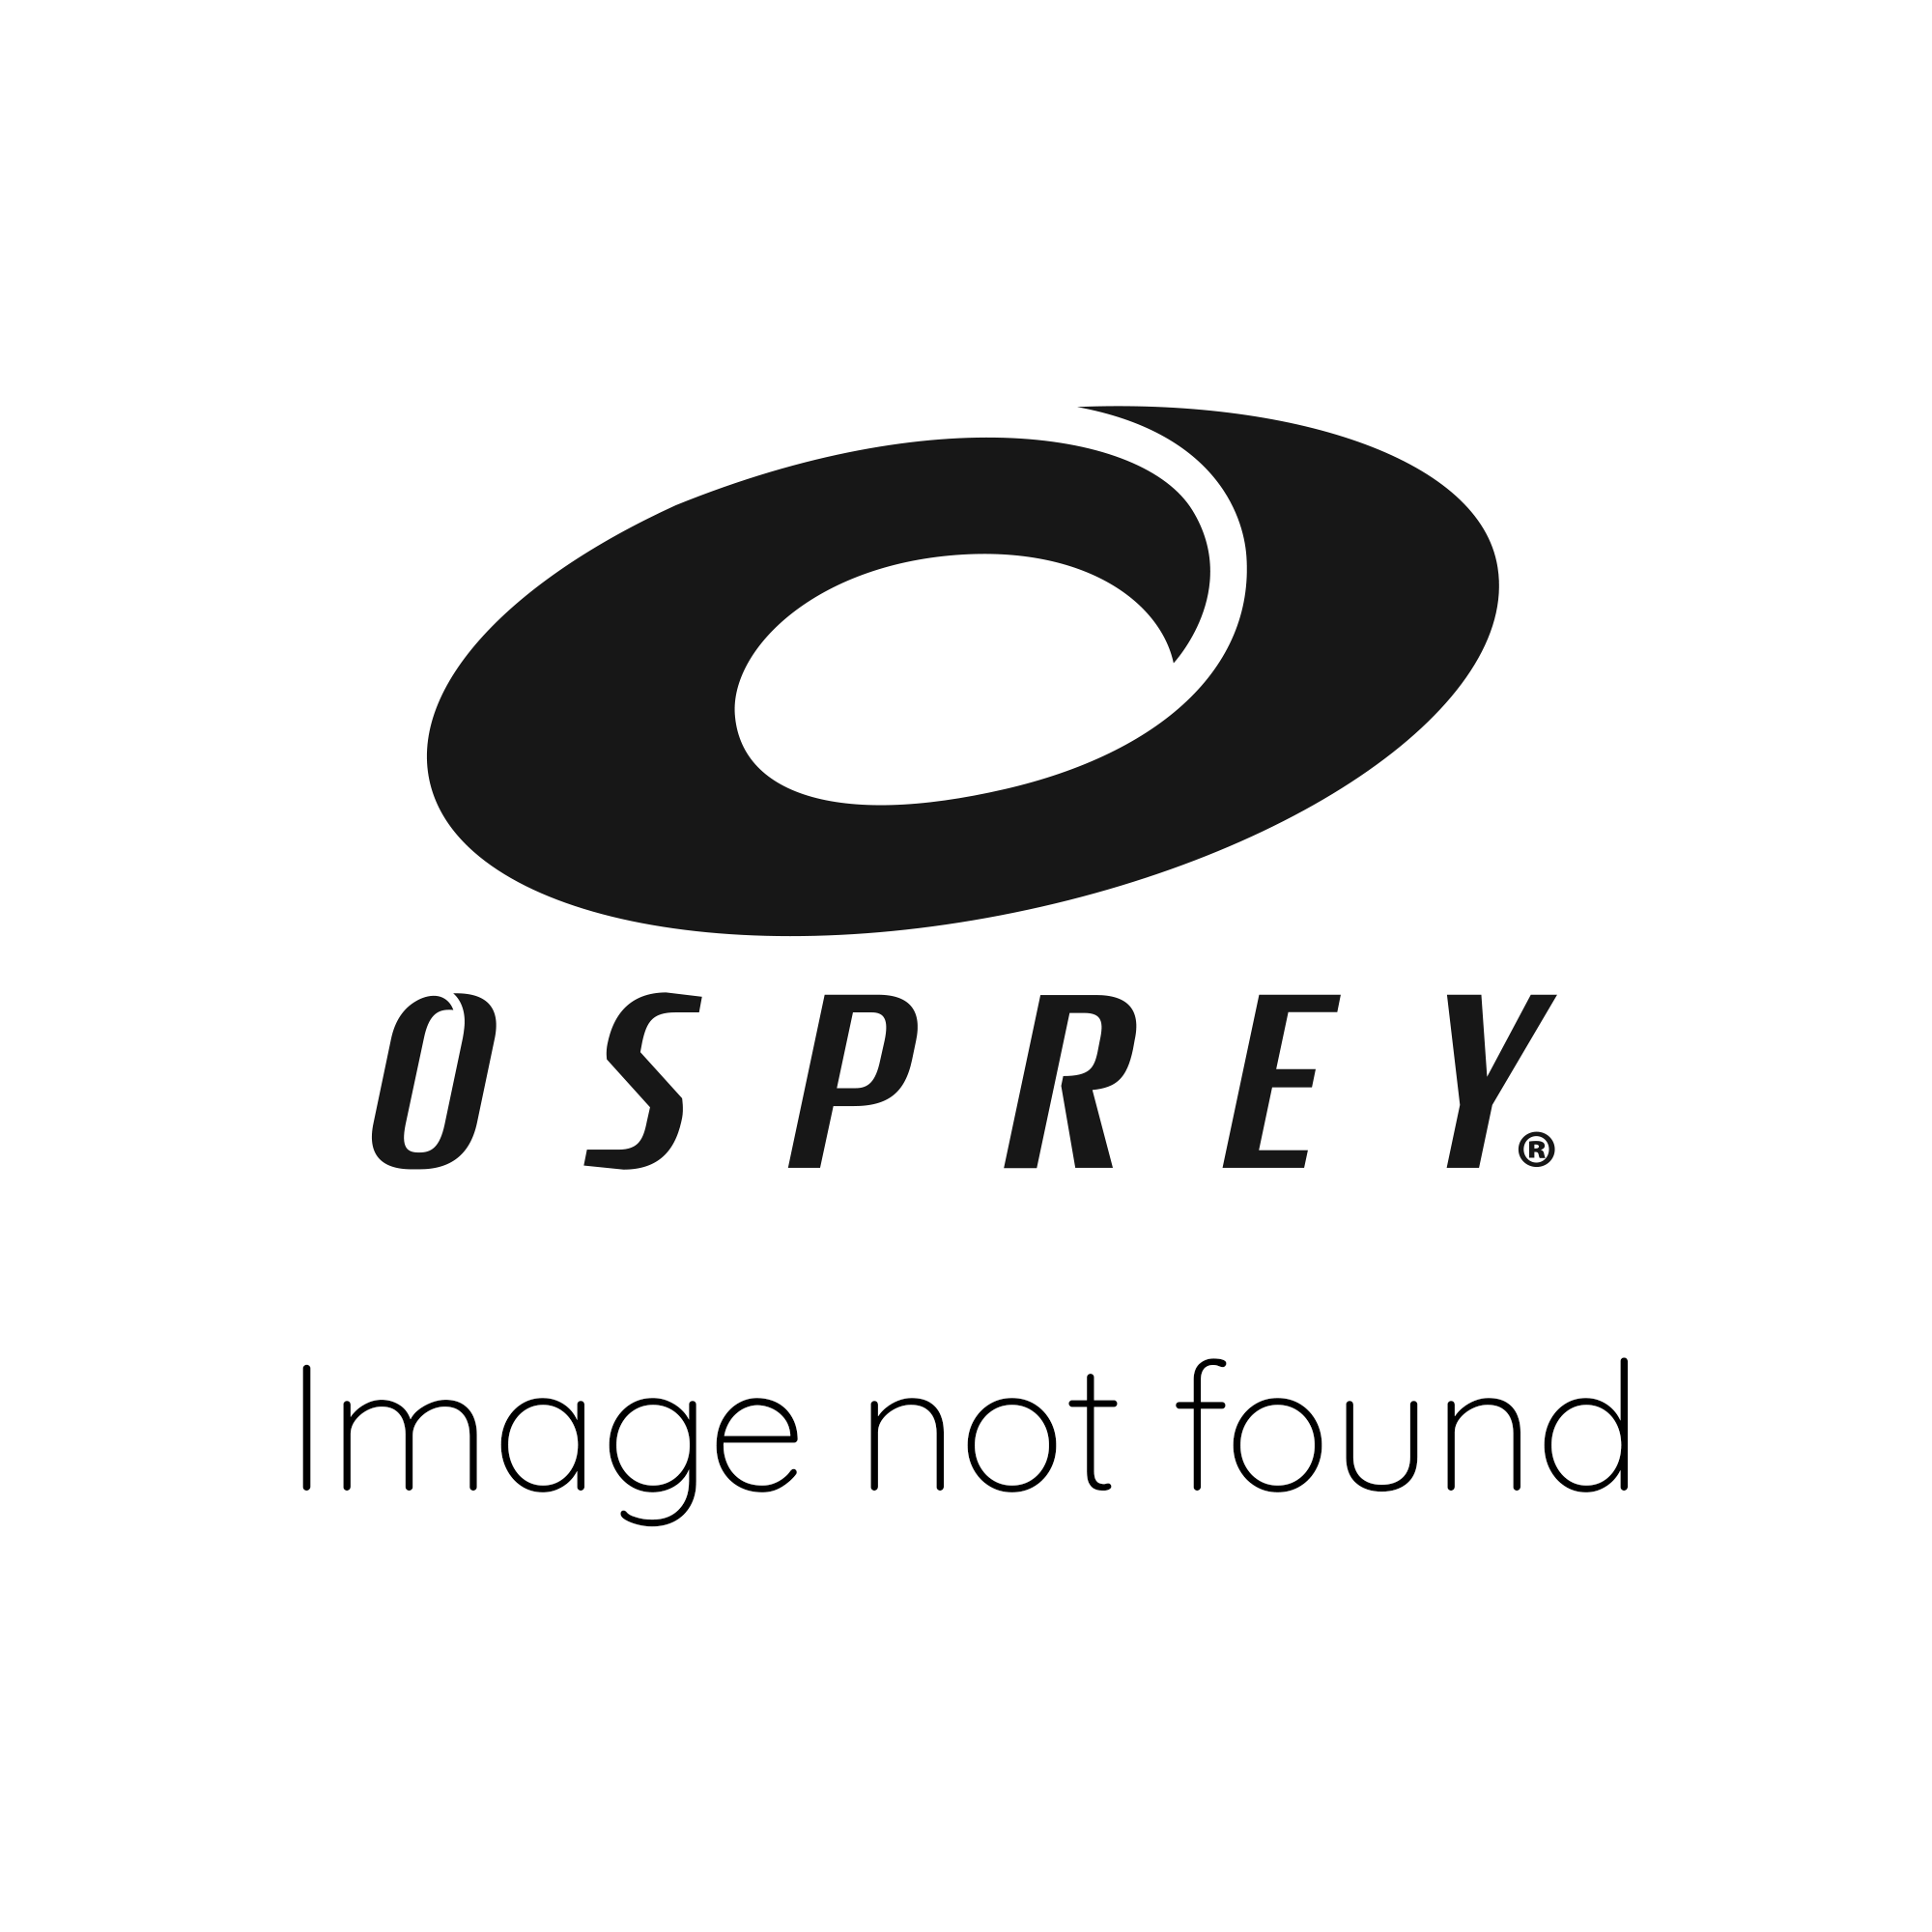 Osprey Womens 5mm Triathlon Full Length Wetsuit - Black